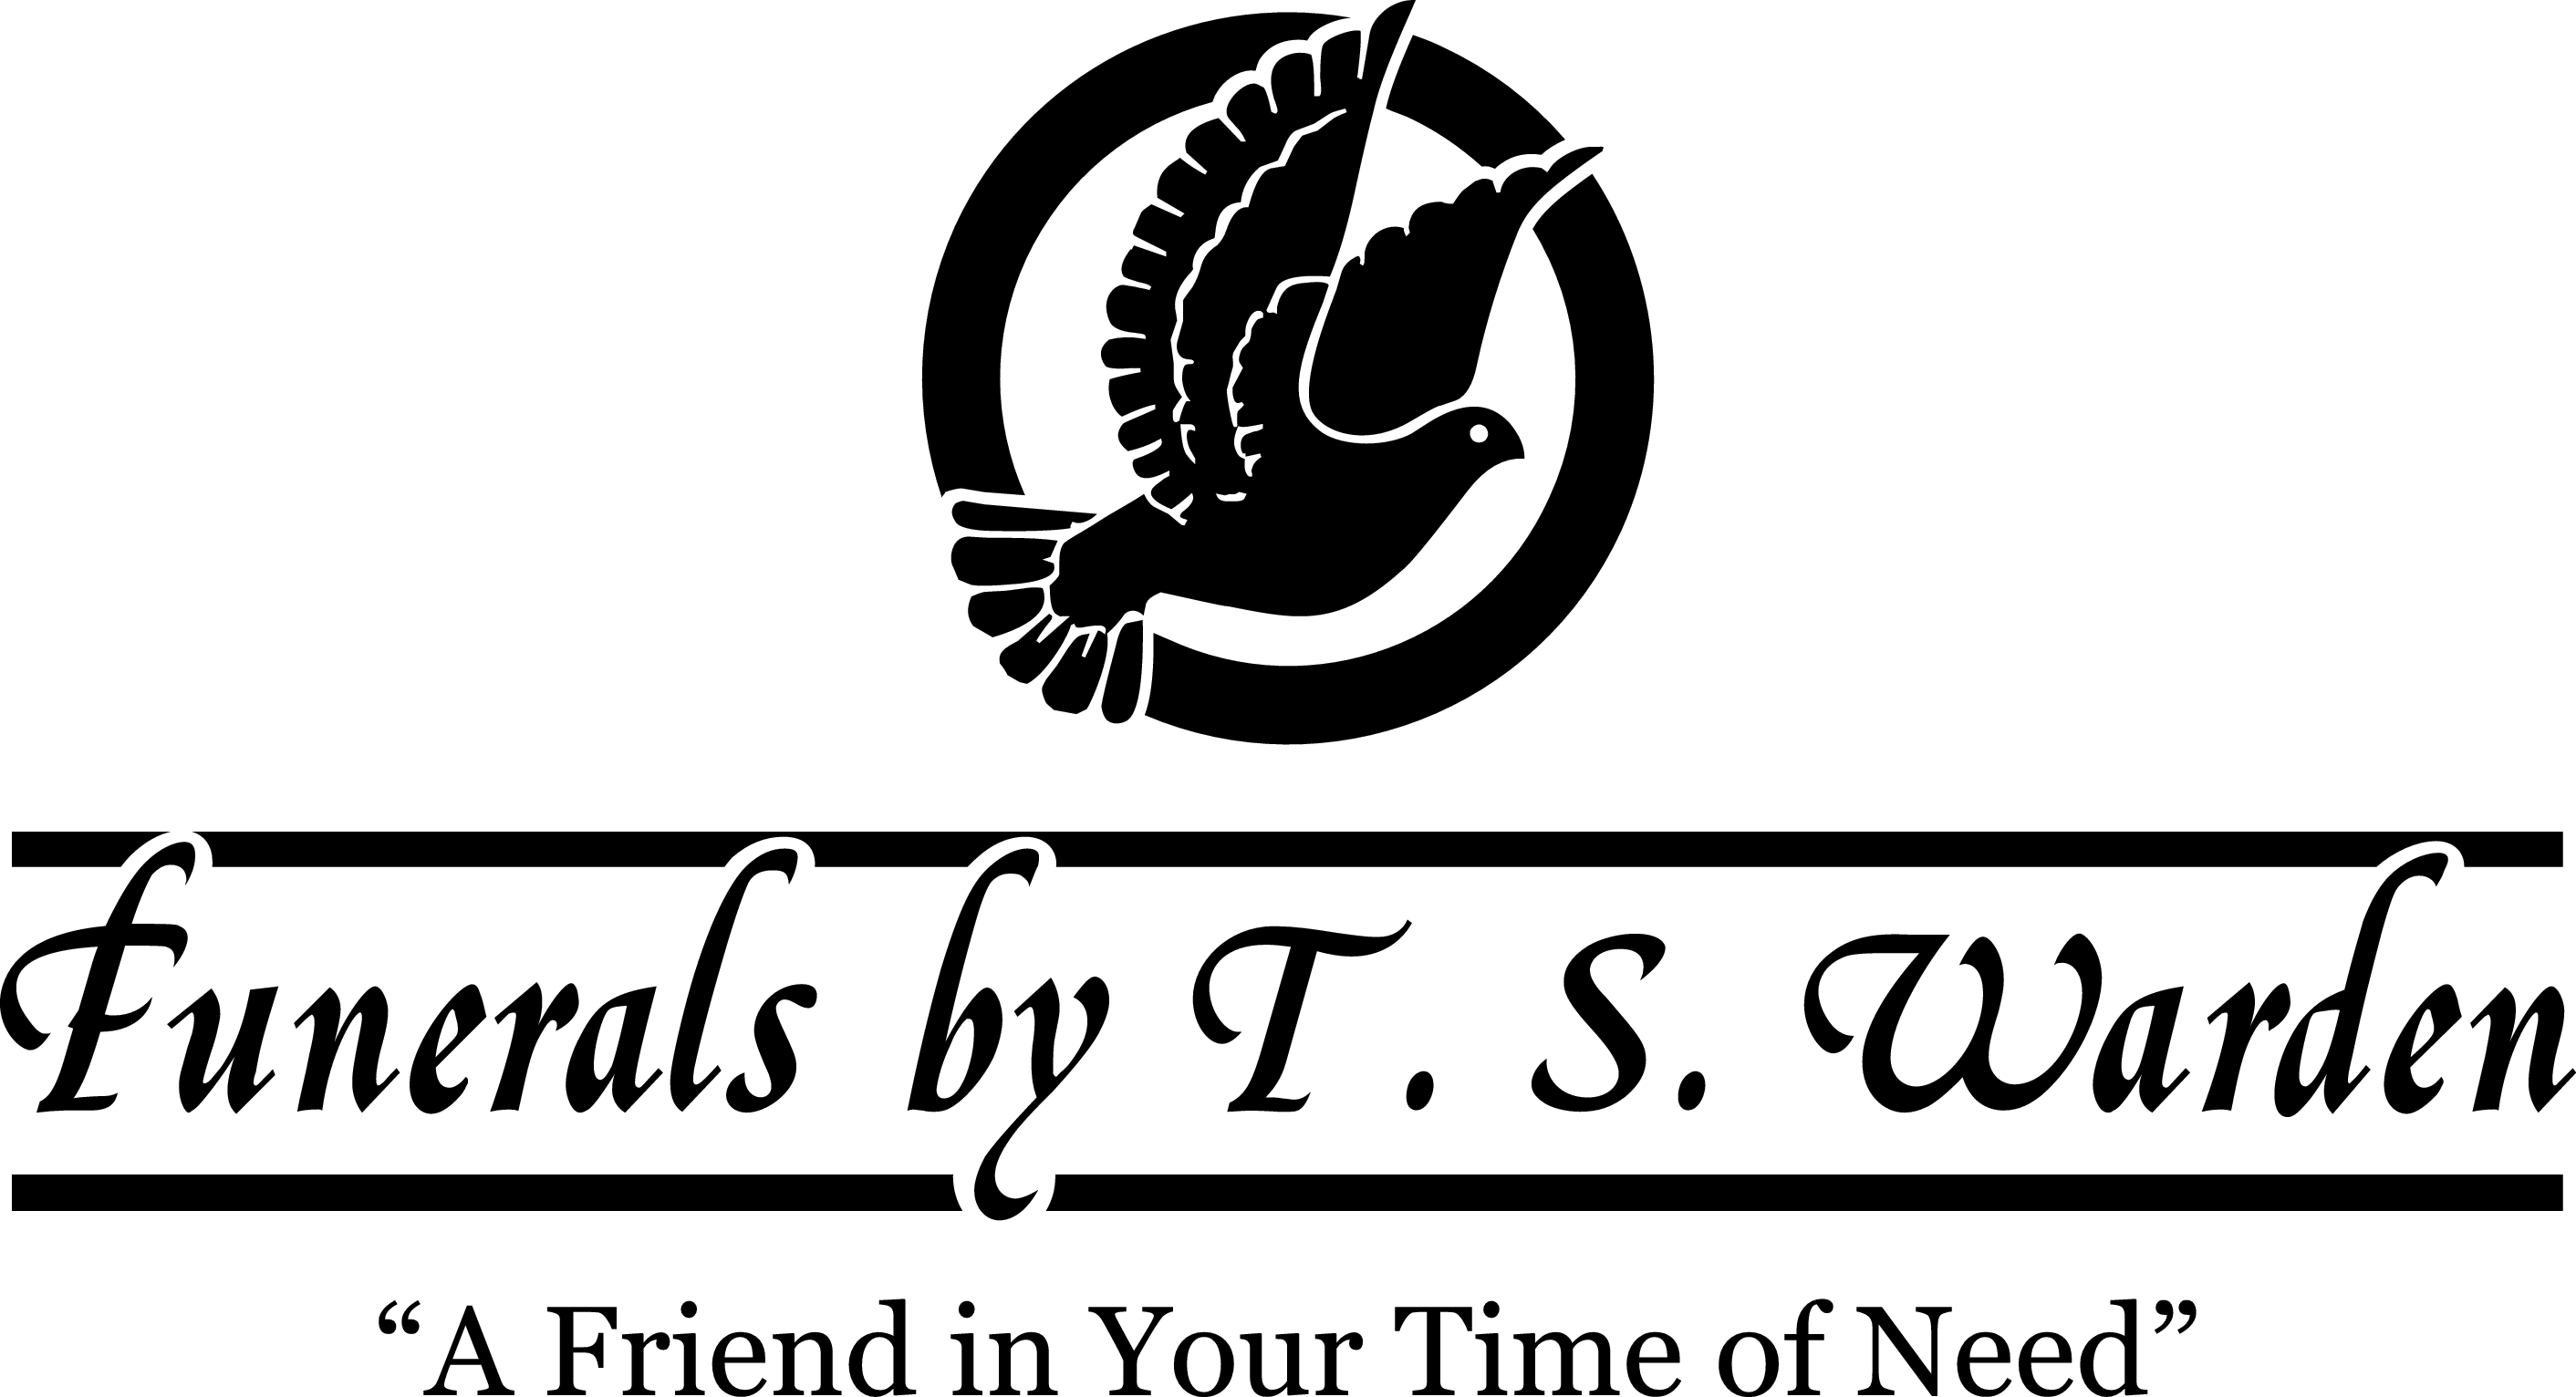 Funerals by T. S. Warden